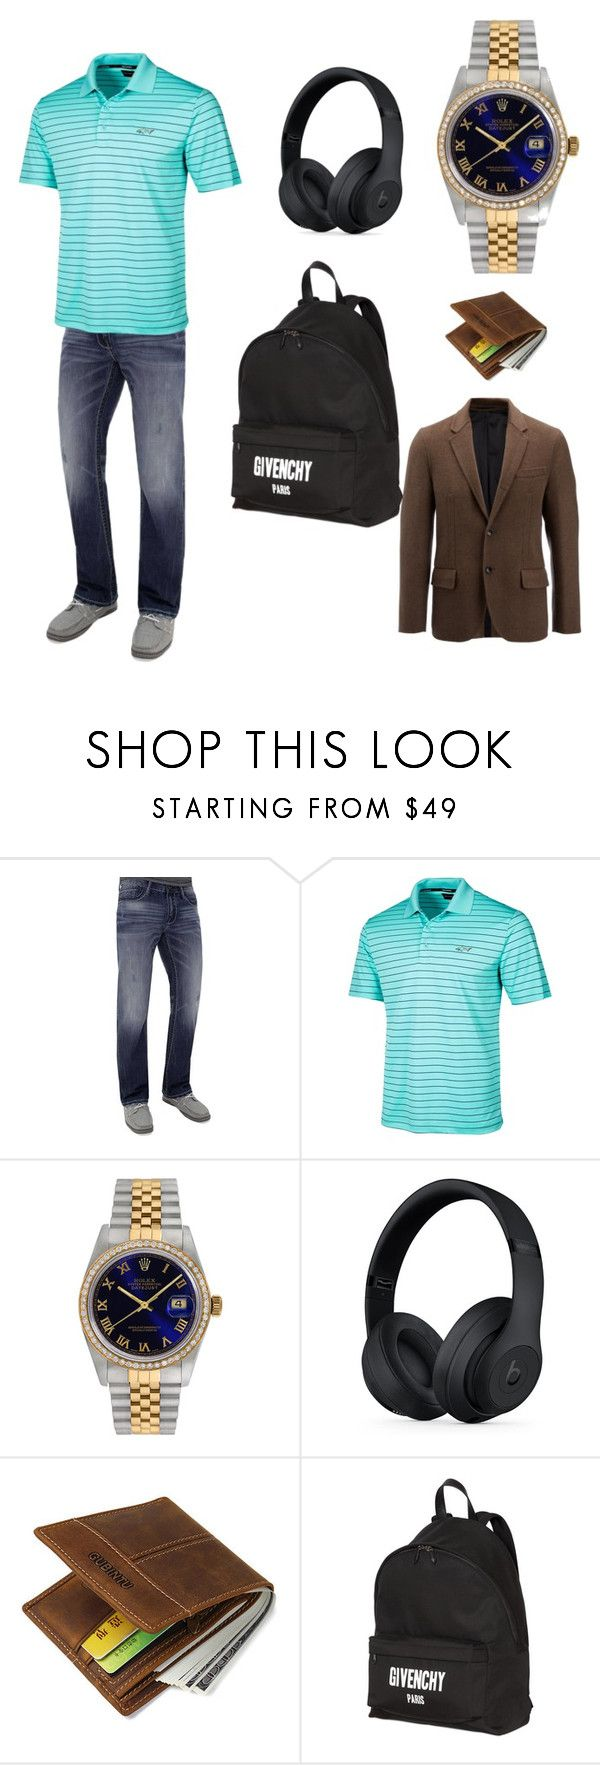 """""""Beck- his design"""" by fall-leaves-lily ❤ liked on Polyvore featuring BKE, Greg Norman, Beats by Dr. Dre, Givenchy, Joseph, men's fashion and menswear"""